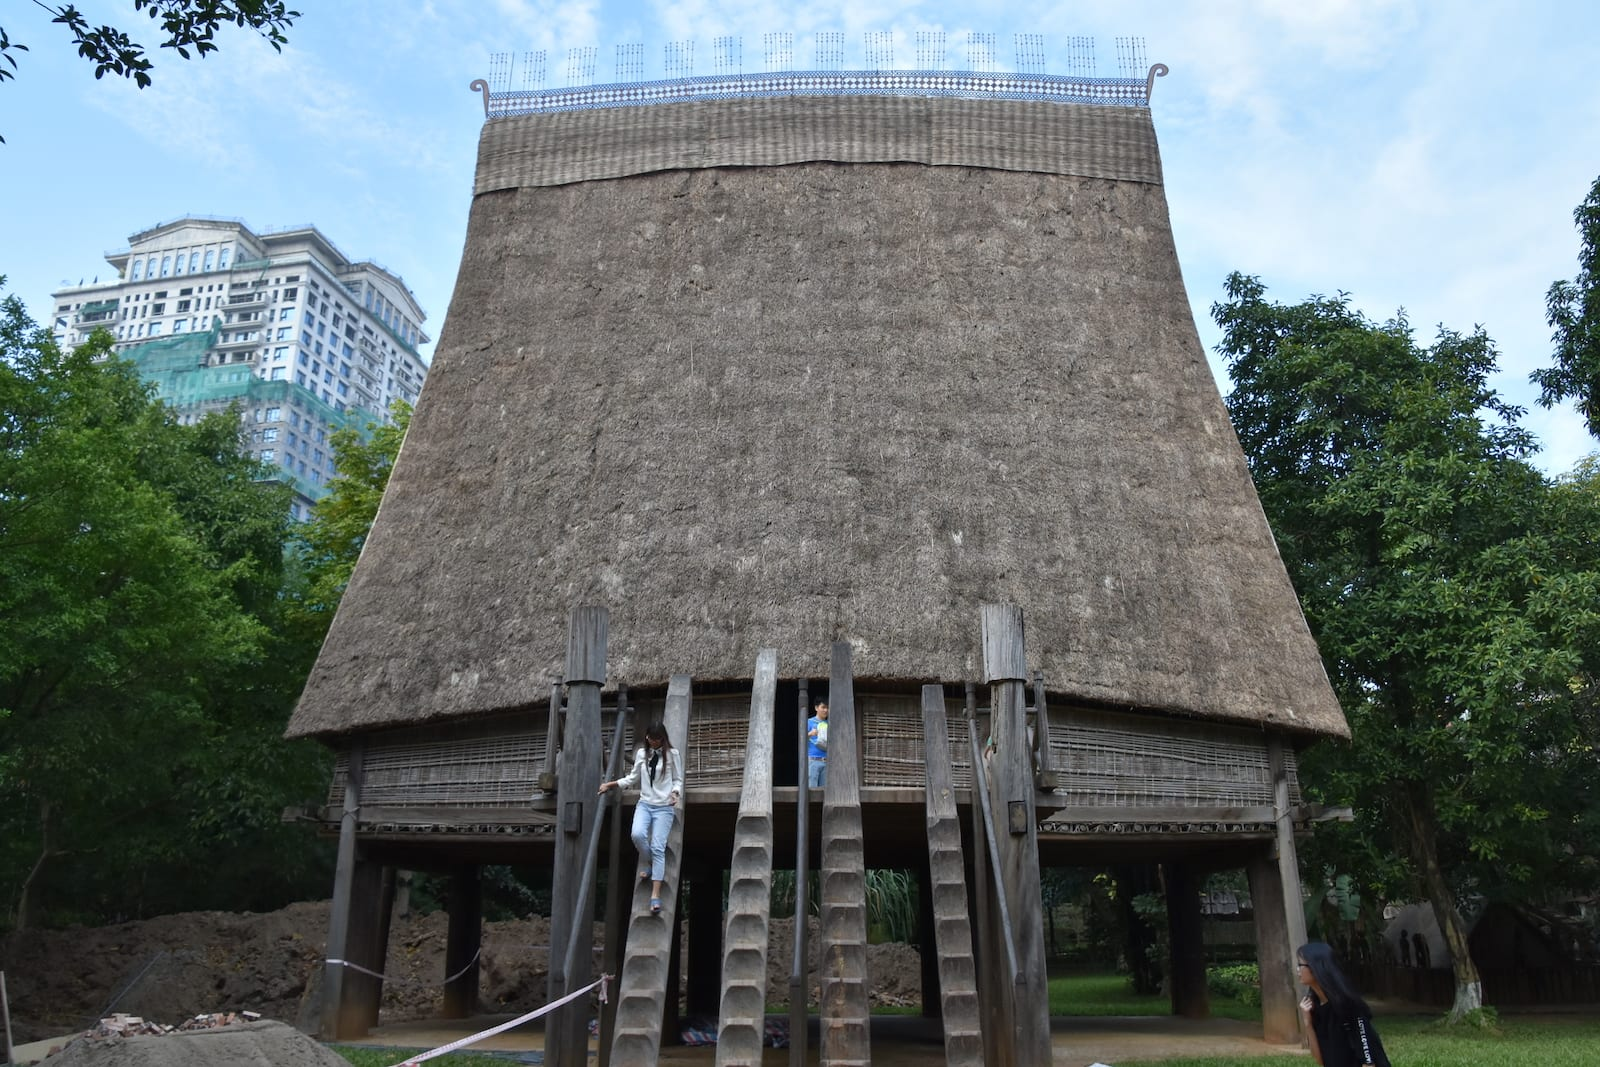 Image of the Bahnar Communal House at the Vietnam Museum of Ethnology in Hanoi